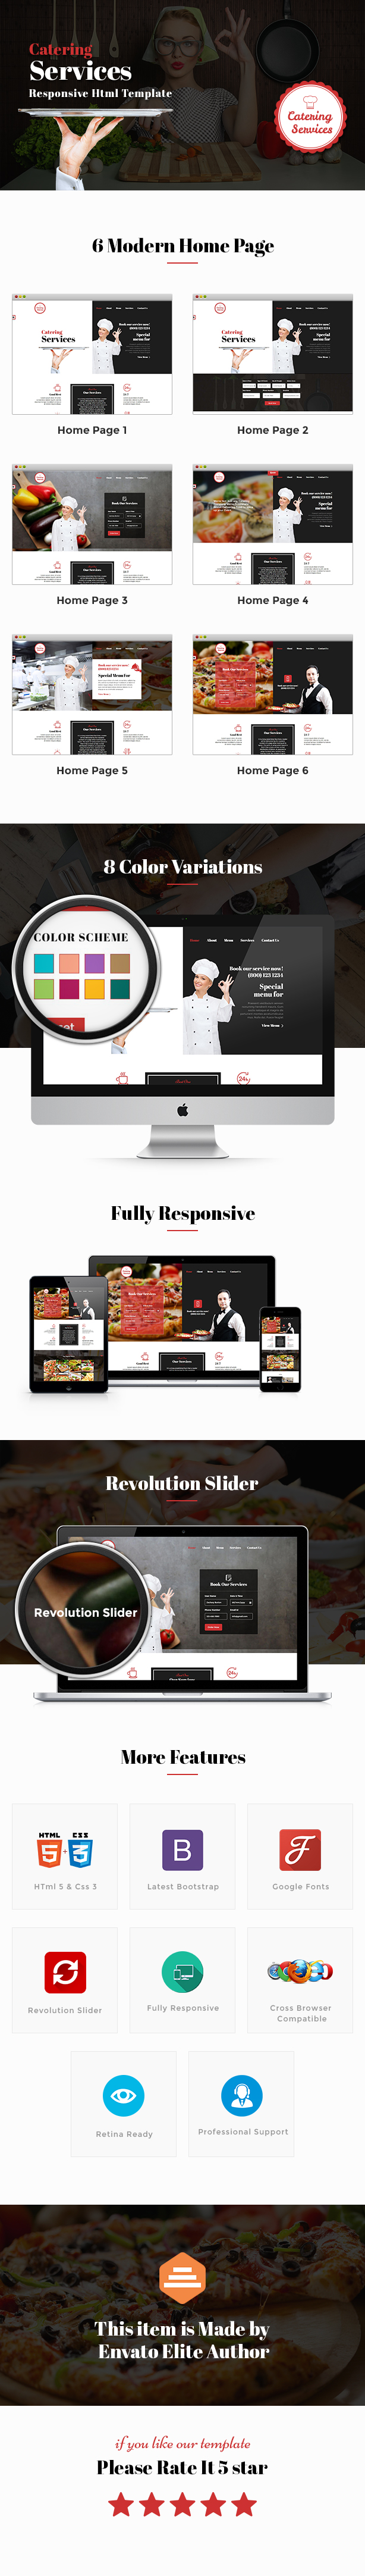 Catering - Chef and Food Restaurant Template | Chef Portfolio - 1